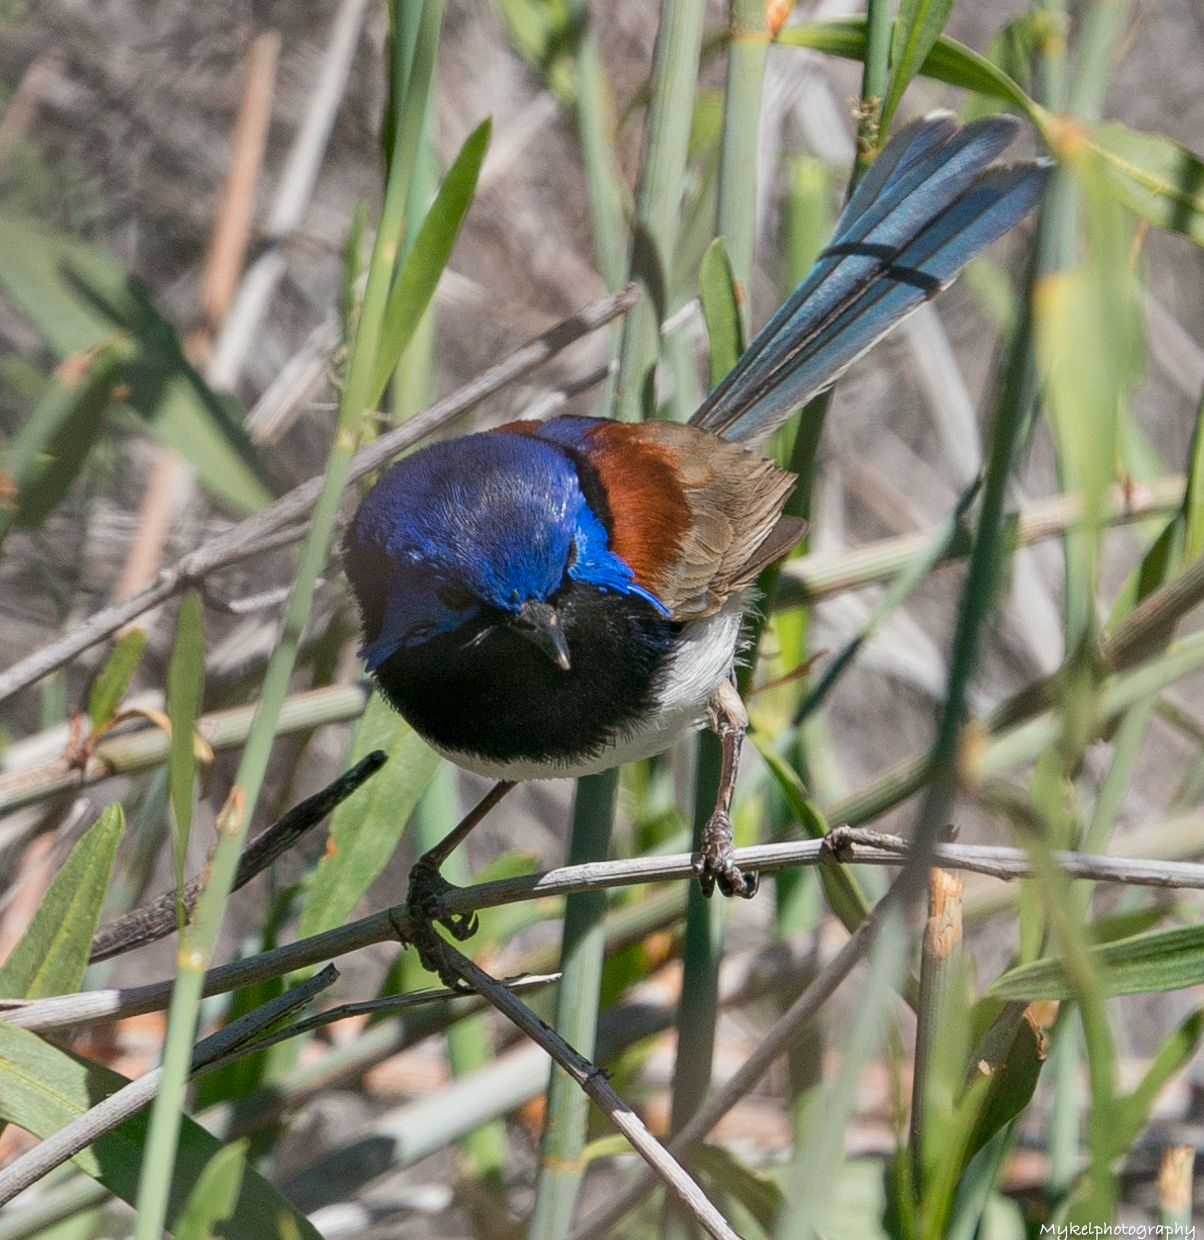 Variegated Fairy-wren  Malurus lamberti  Maluridae  Widespread in the arid and semi-arid zones of mainland Australia, the Variegated Fairy-wren is also recorded in tropical, sub-tropical and temperate regions, where it inhabits a wide variety of dense thickets.